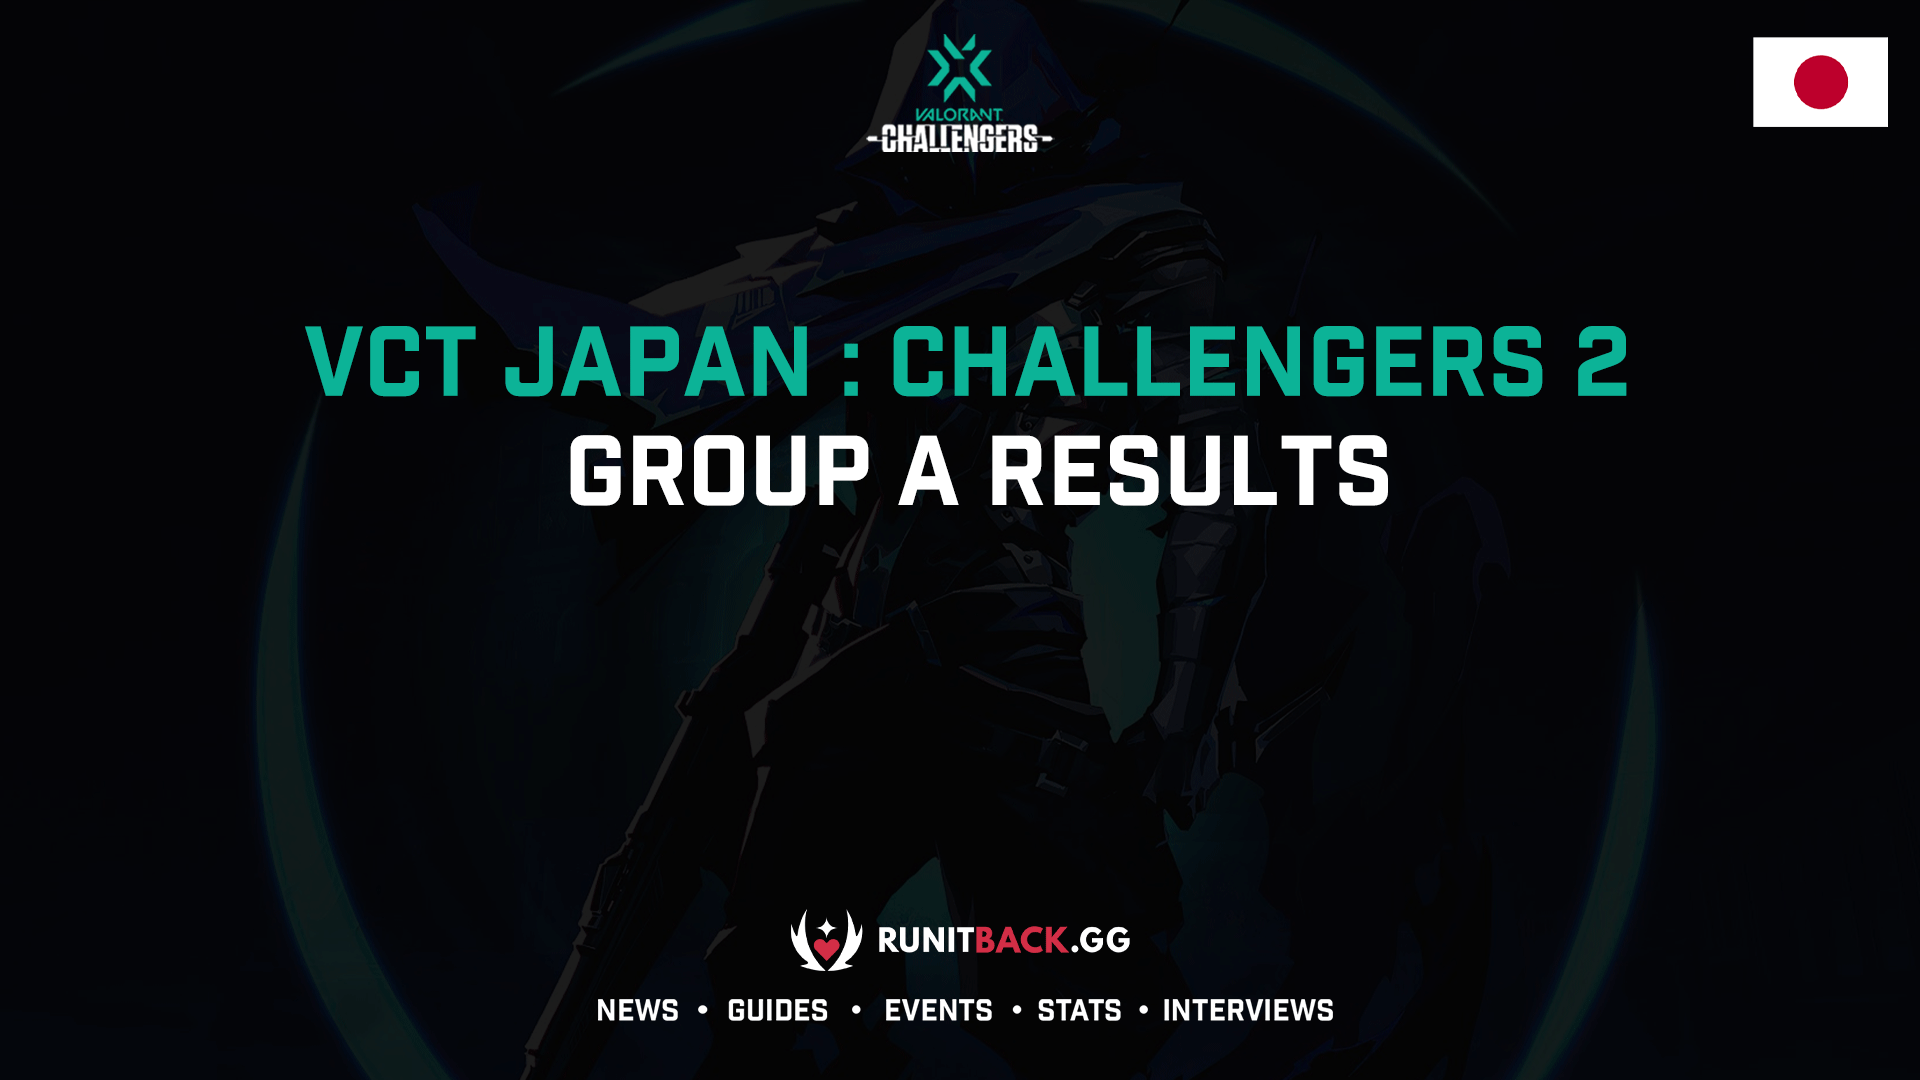 VCT Japan: Challengers 2 Group A Results